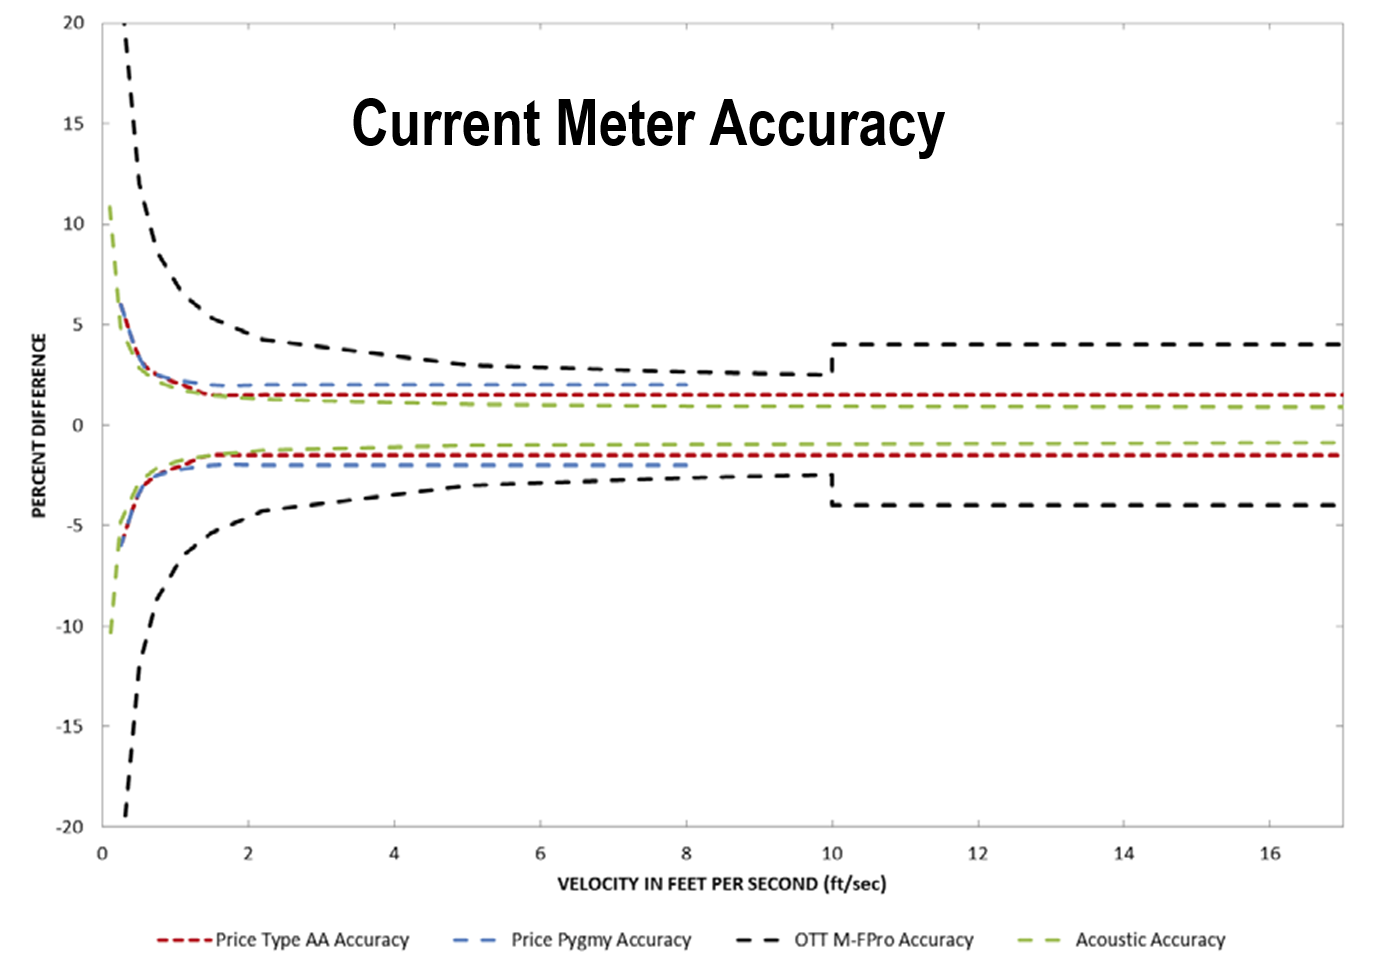 Current Meter Accuracy